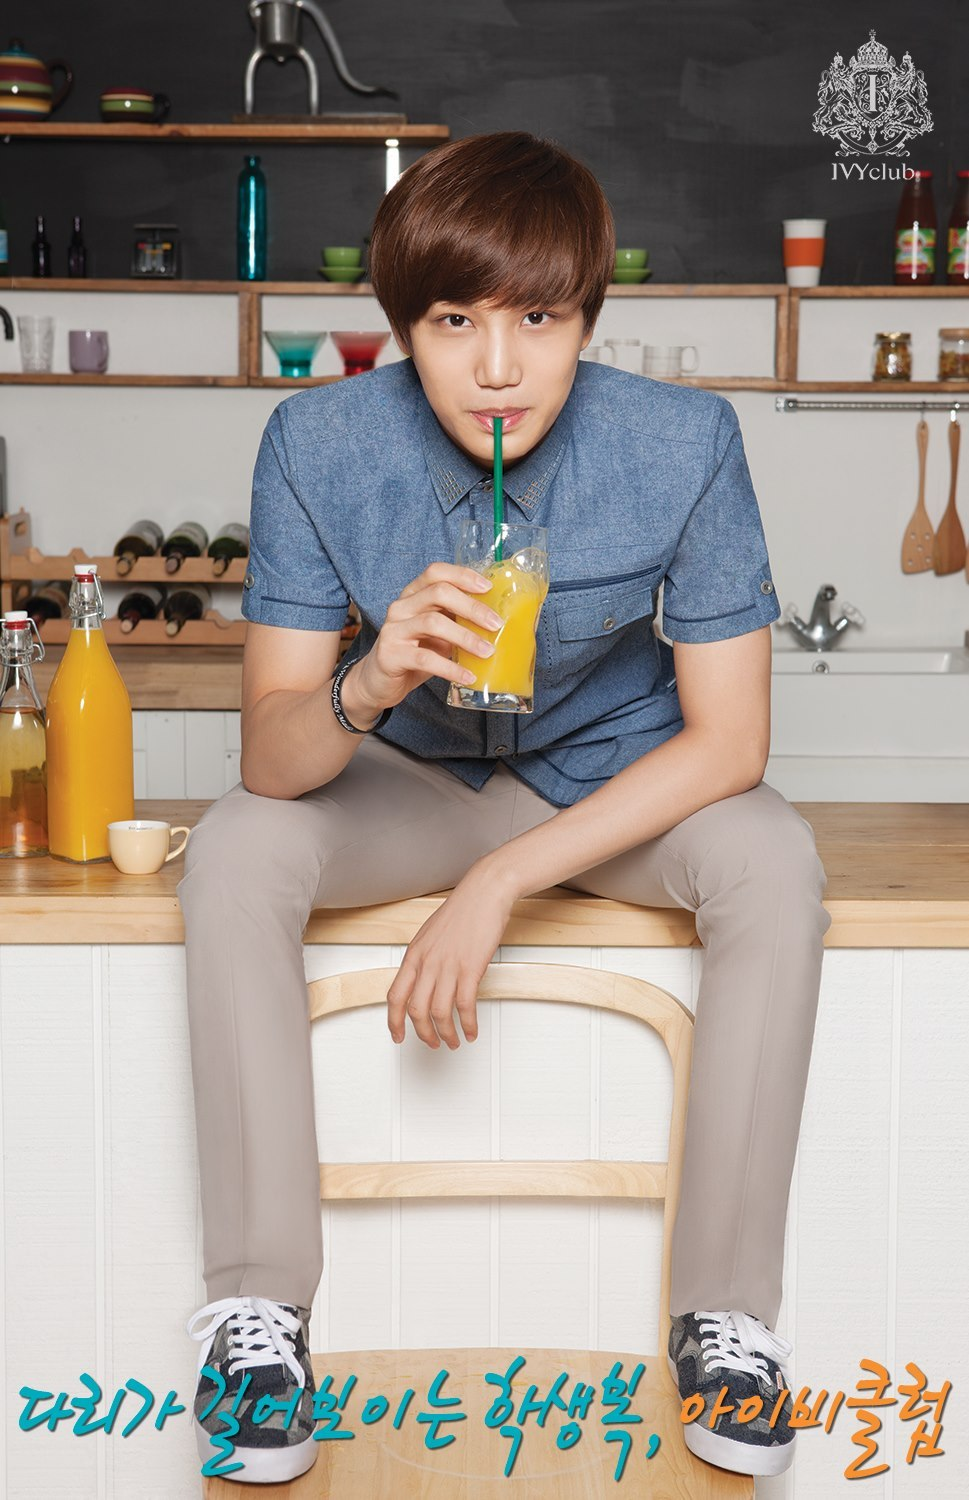 ladyevilent:  HQ | EXO-K 130326 -[ Ivy Club ]- Facebook update 2013 S/S IVYCLUB       ChanBeak (2000x1292)  & Kai (969x1500)  . Cr ivyclub.com